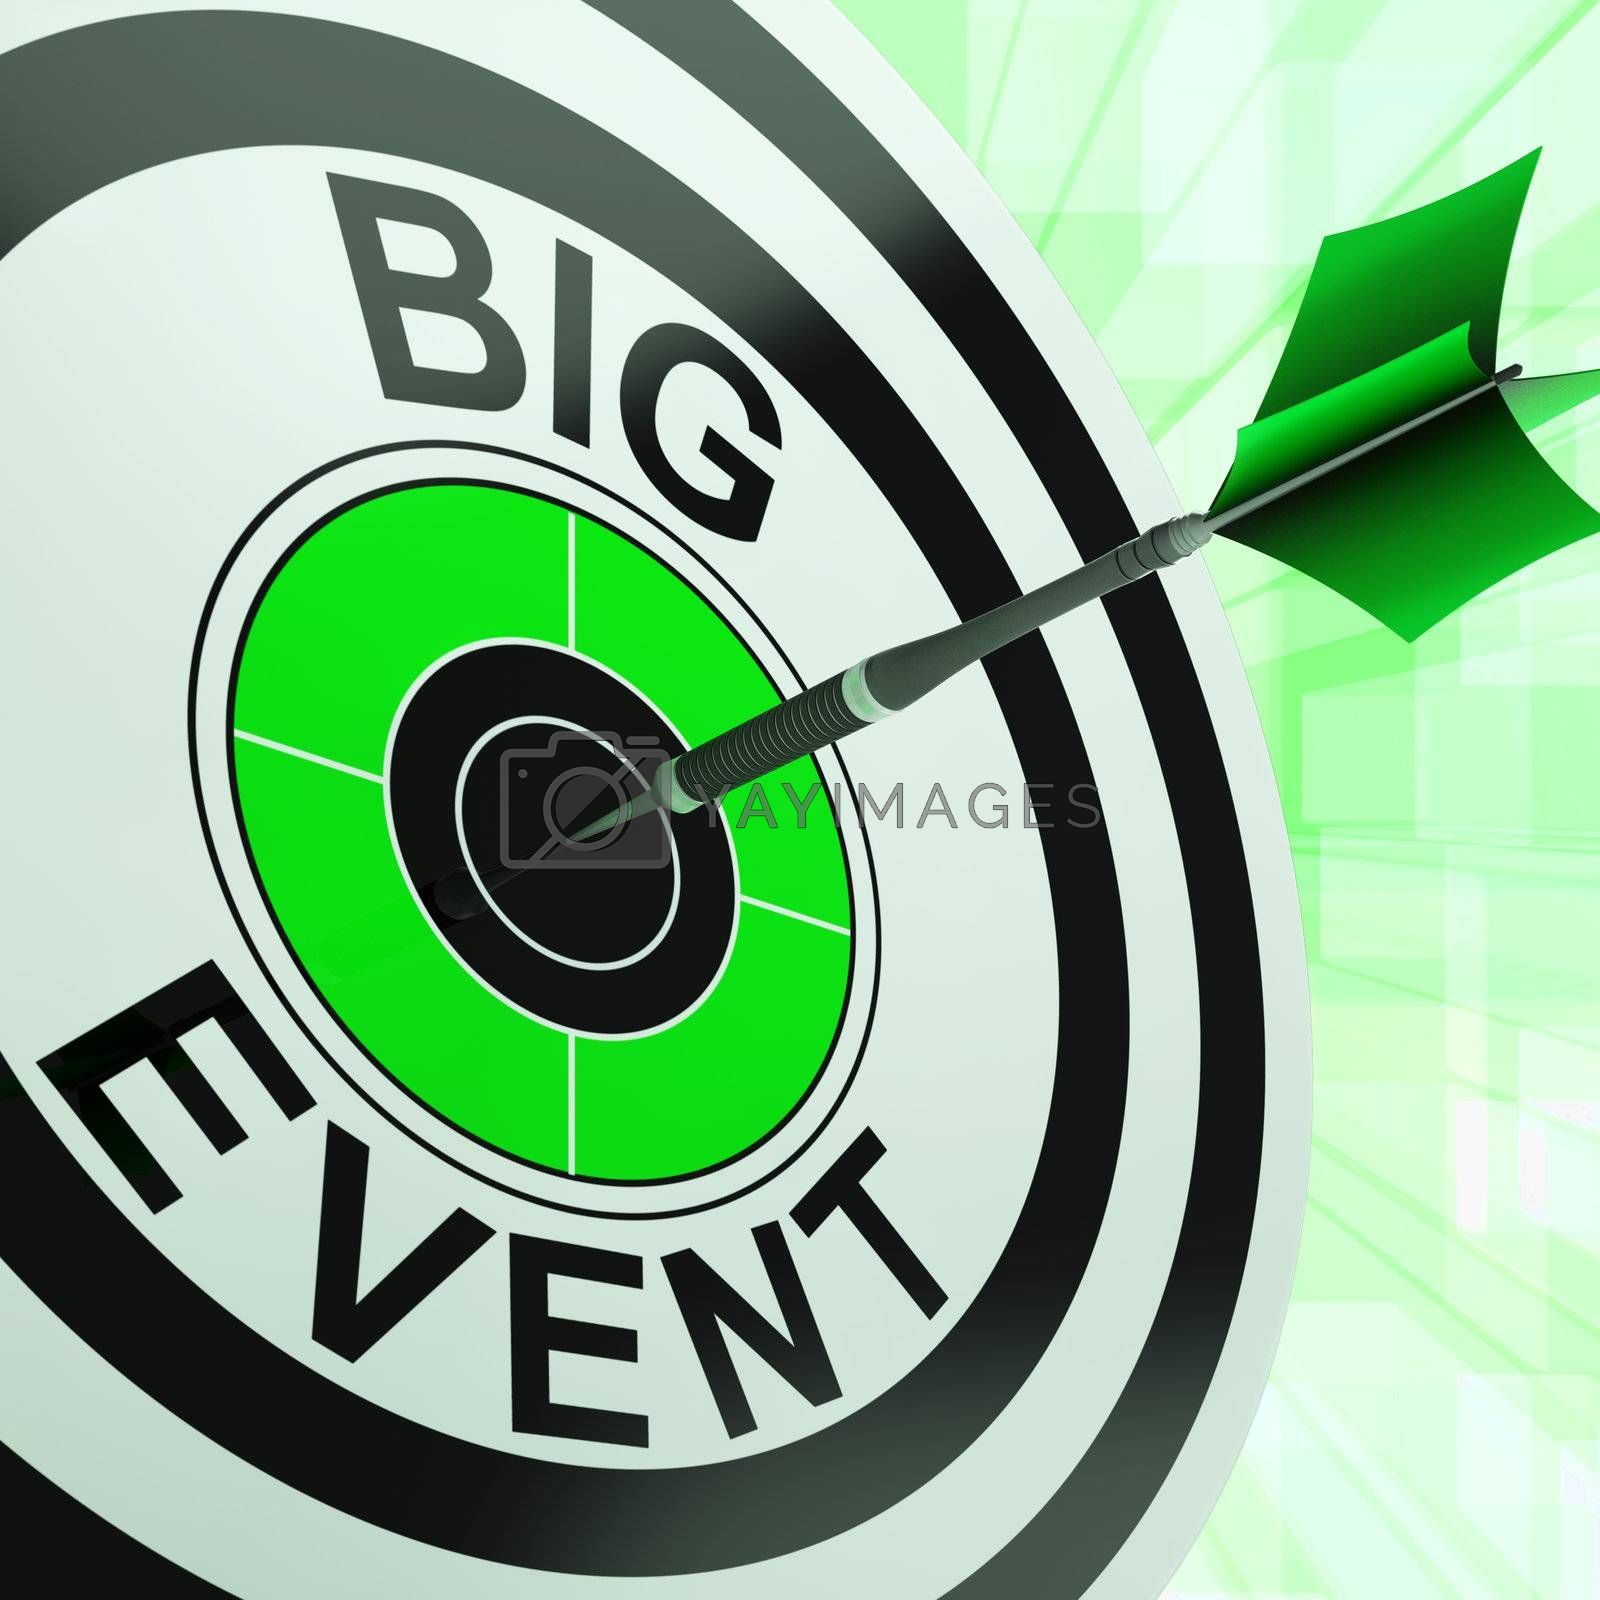 Big Event Target Showing Upcoming Occasion, Event Or Festivities